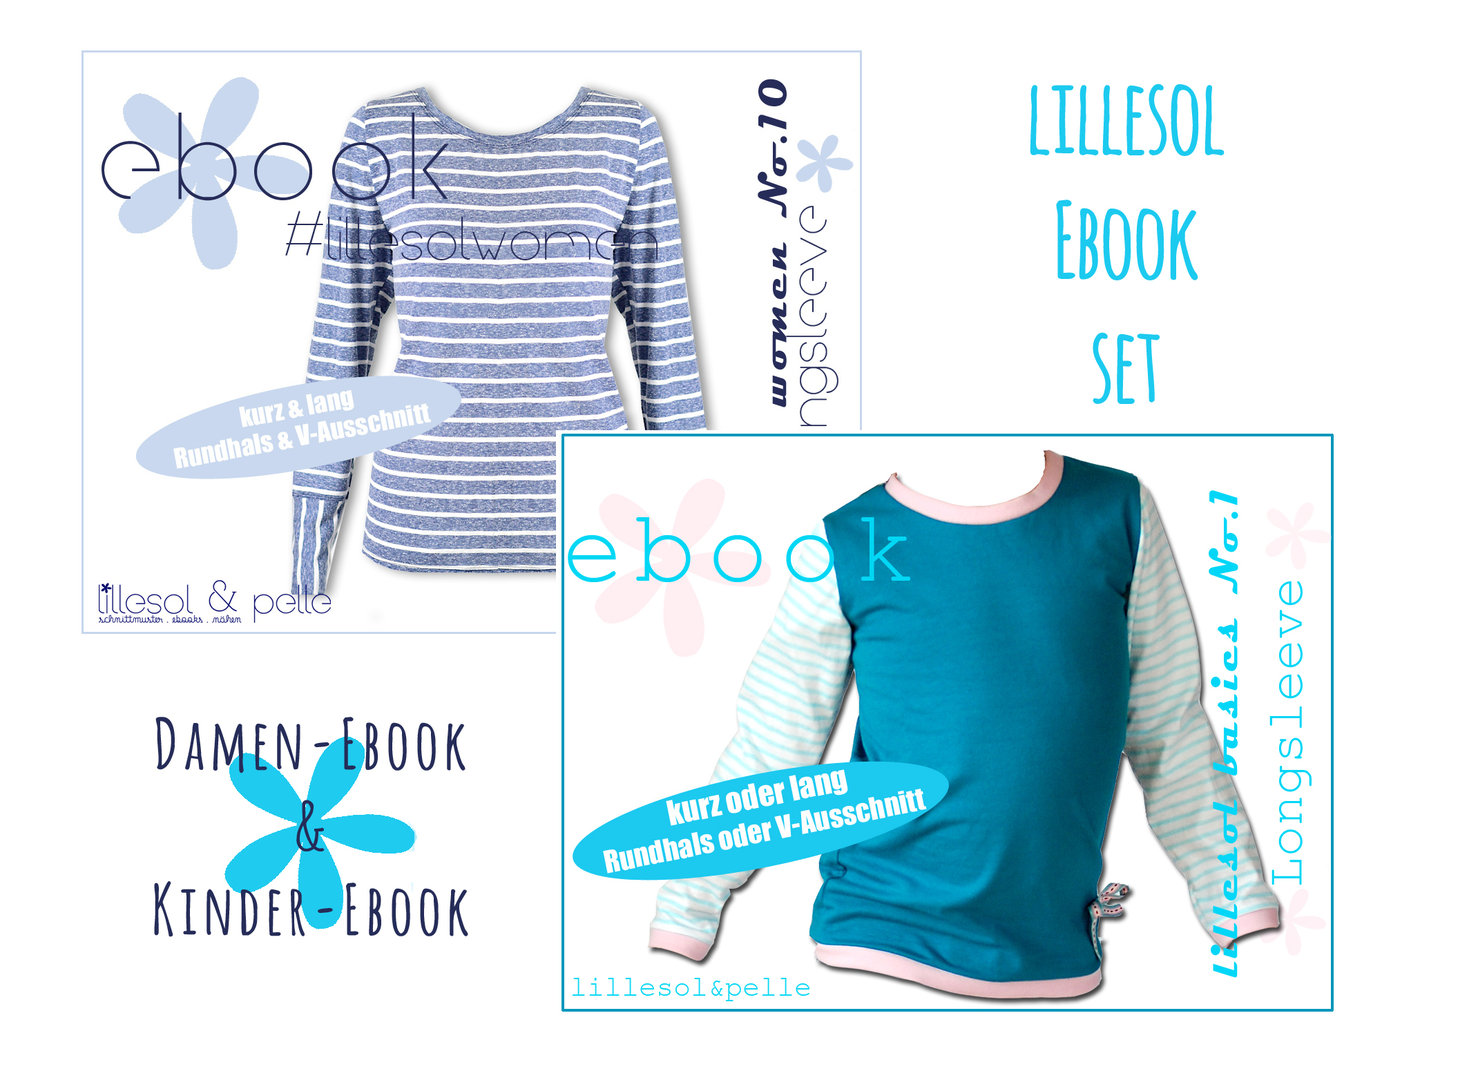 lillesol ebook set basic No.1 und women No.10 *mit Video-Nähanleitung*